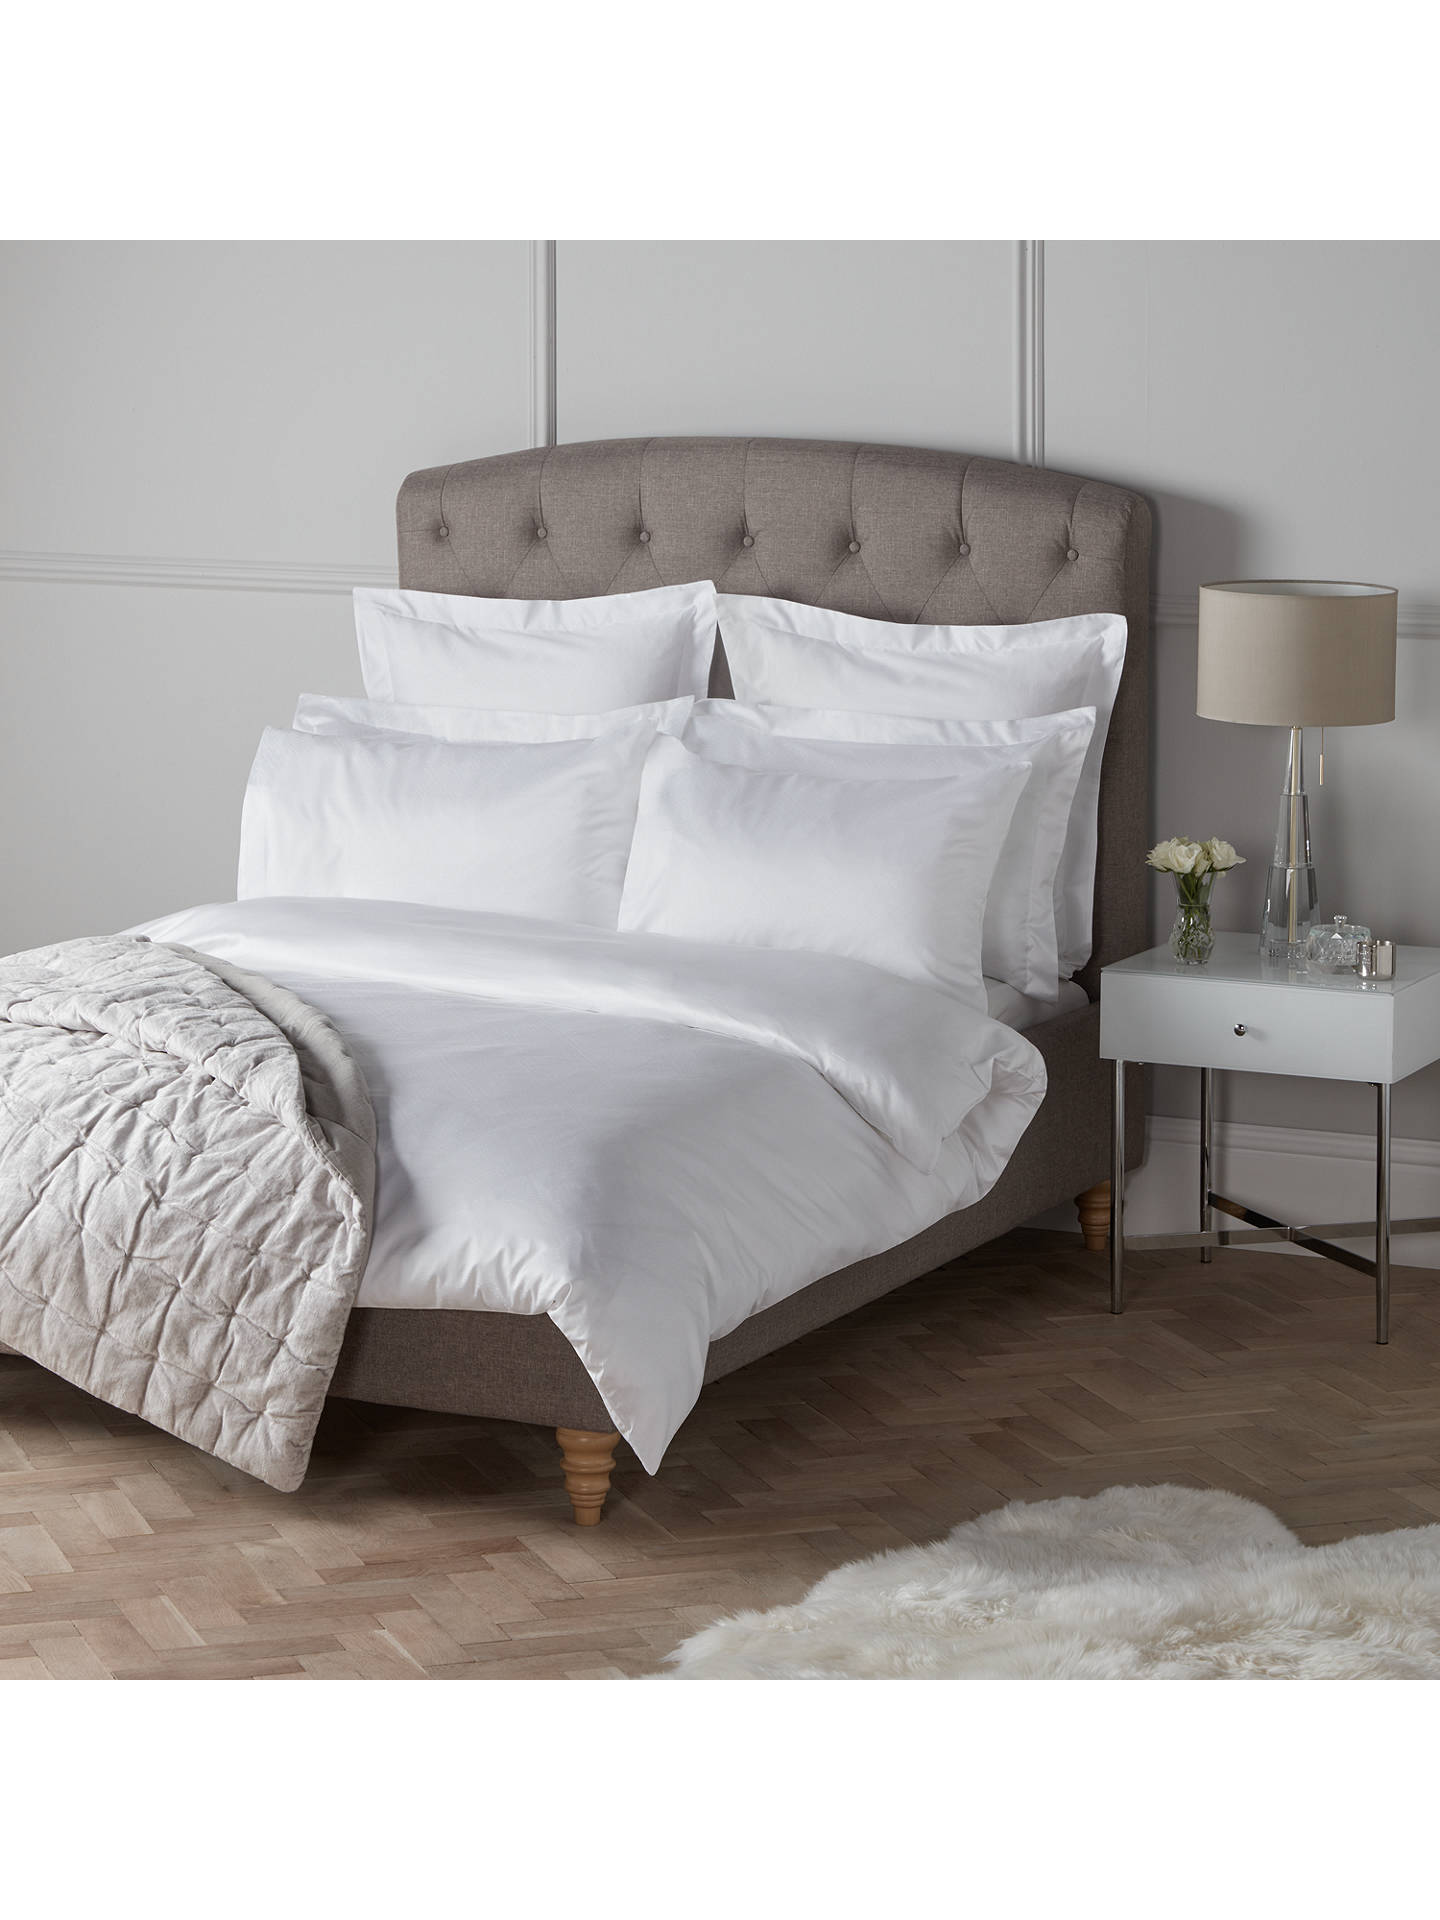 BuyJohn Lewis & Partners The Ultimate Collection Hamilton Jacquard 1000 Thread Count Cotton Standard Pillowcase, White Online at johnlewis.com